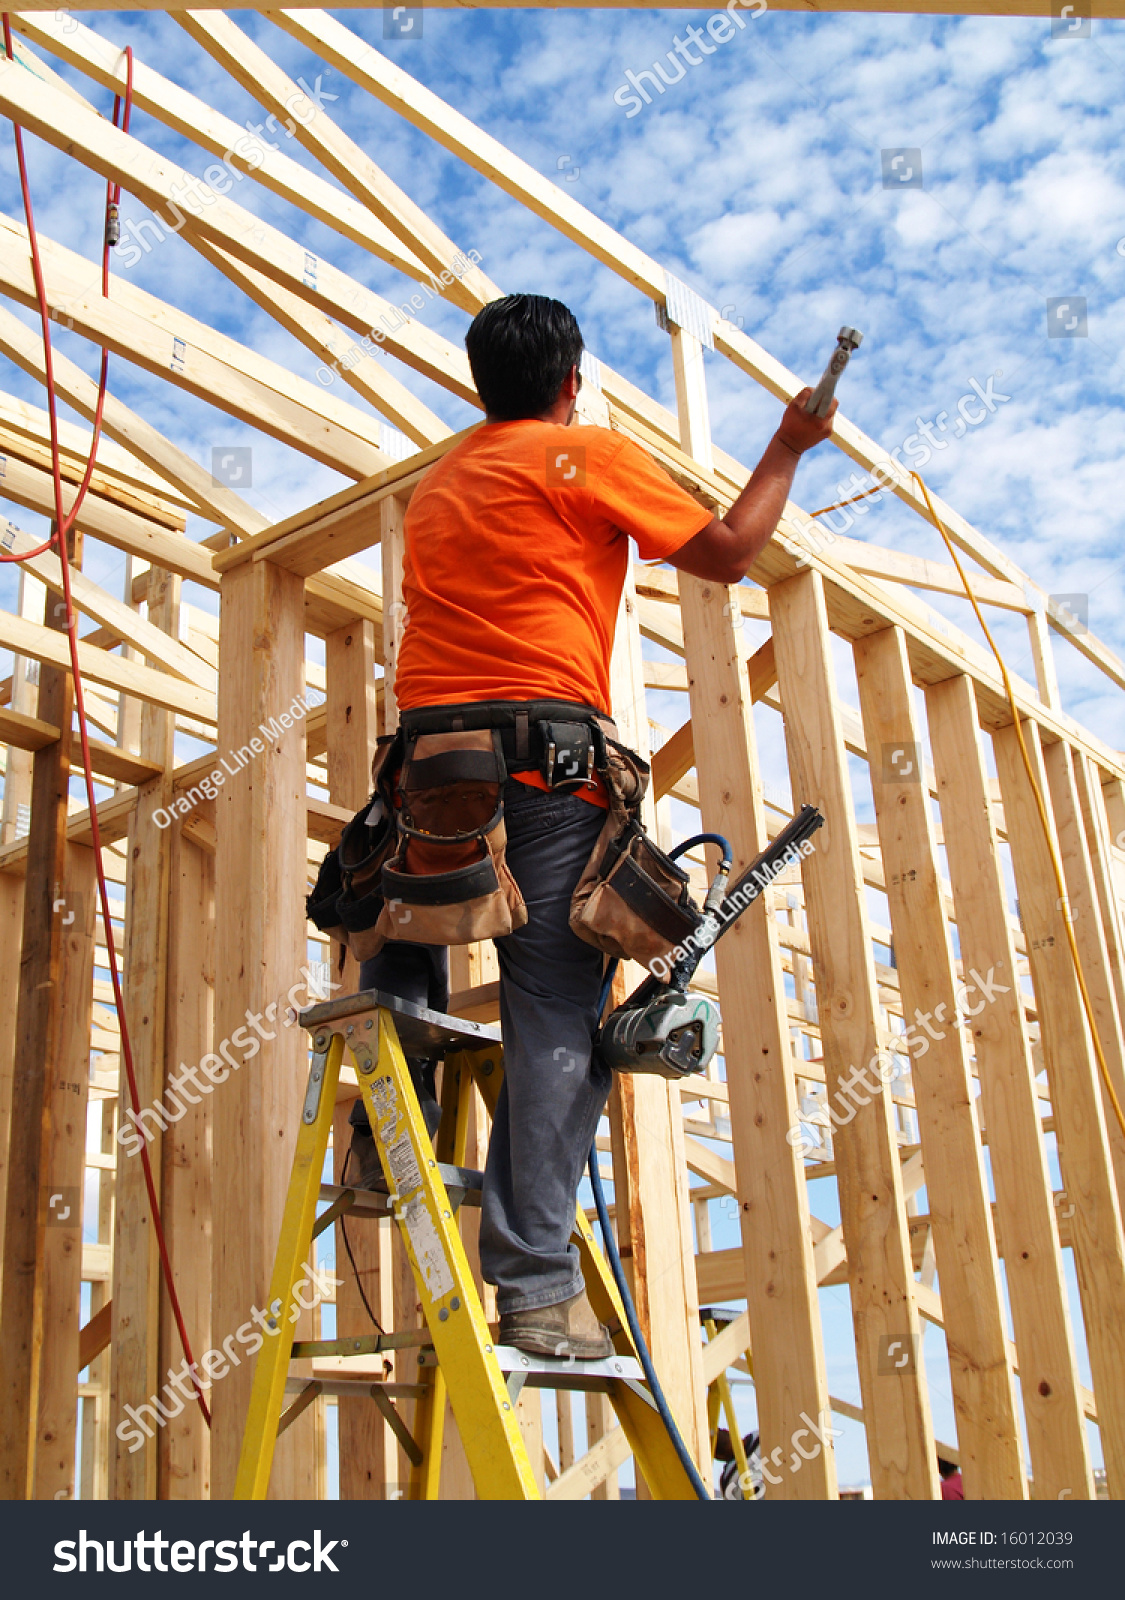 Construction Worker Tool Belt On Stands Stock Photo 16012039 ... for Worker Climbing Ladder  589ifm